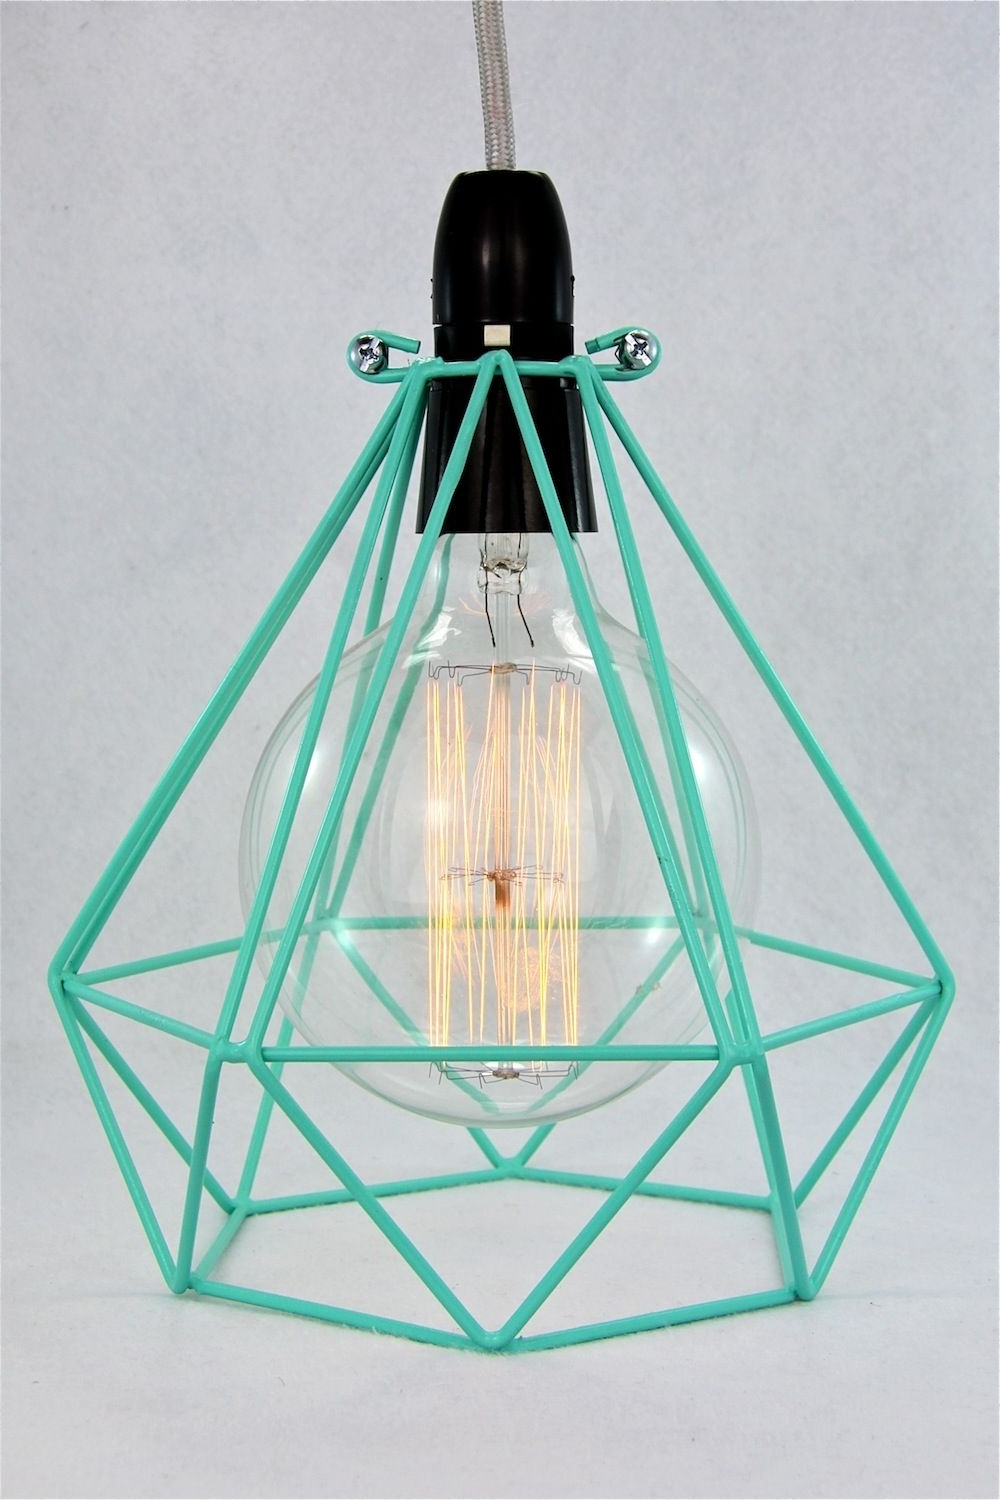 Diamond Wire Lamp Cage Pendant Cloth Cord Trouble Light Chandelier Within Well Liked Turquoise Gem Chandelier Lamps (Gallery 13 of 20)